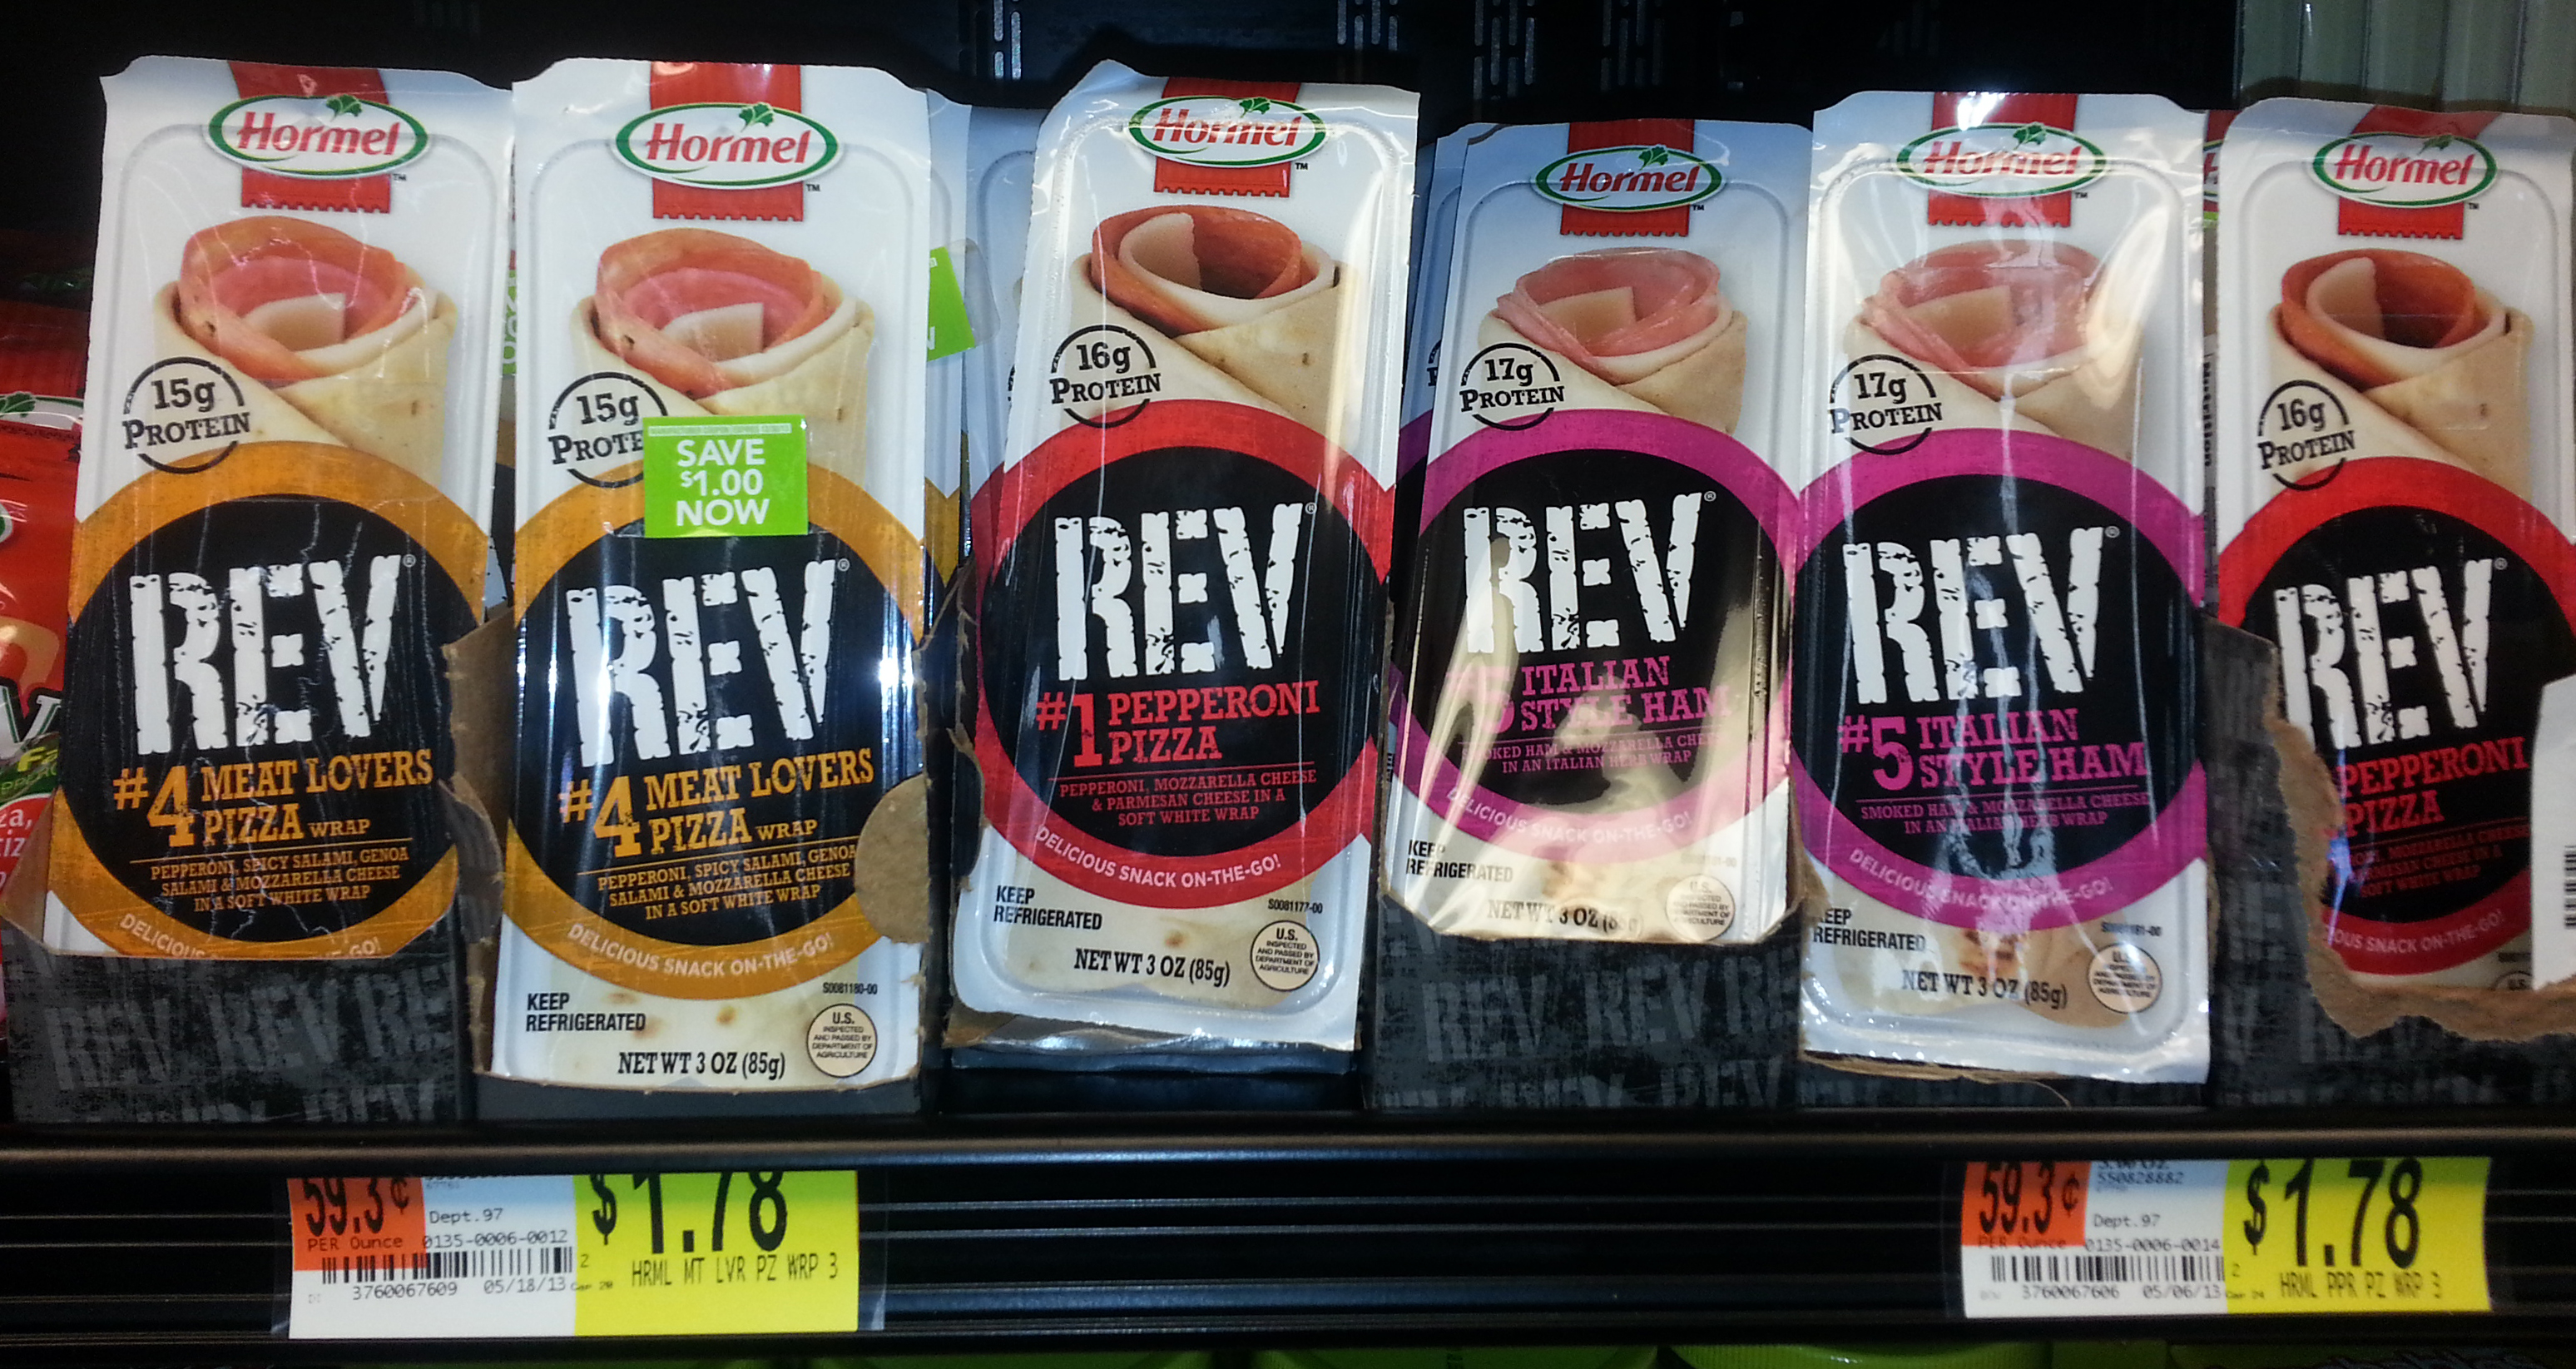 Hormel Rev Wraps Just $1.28 at Walmart!